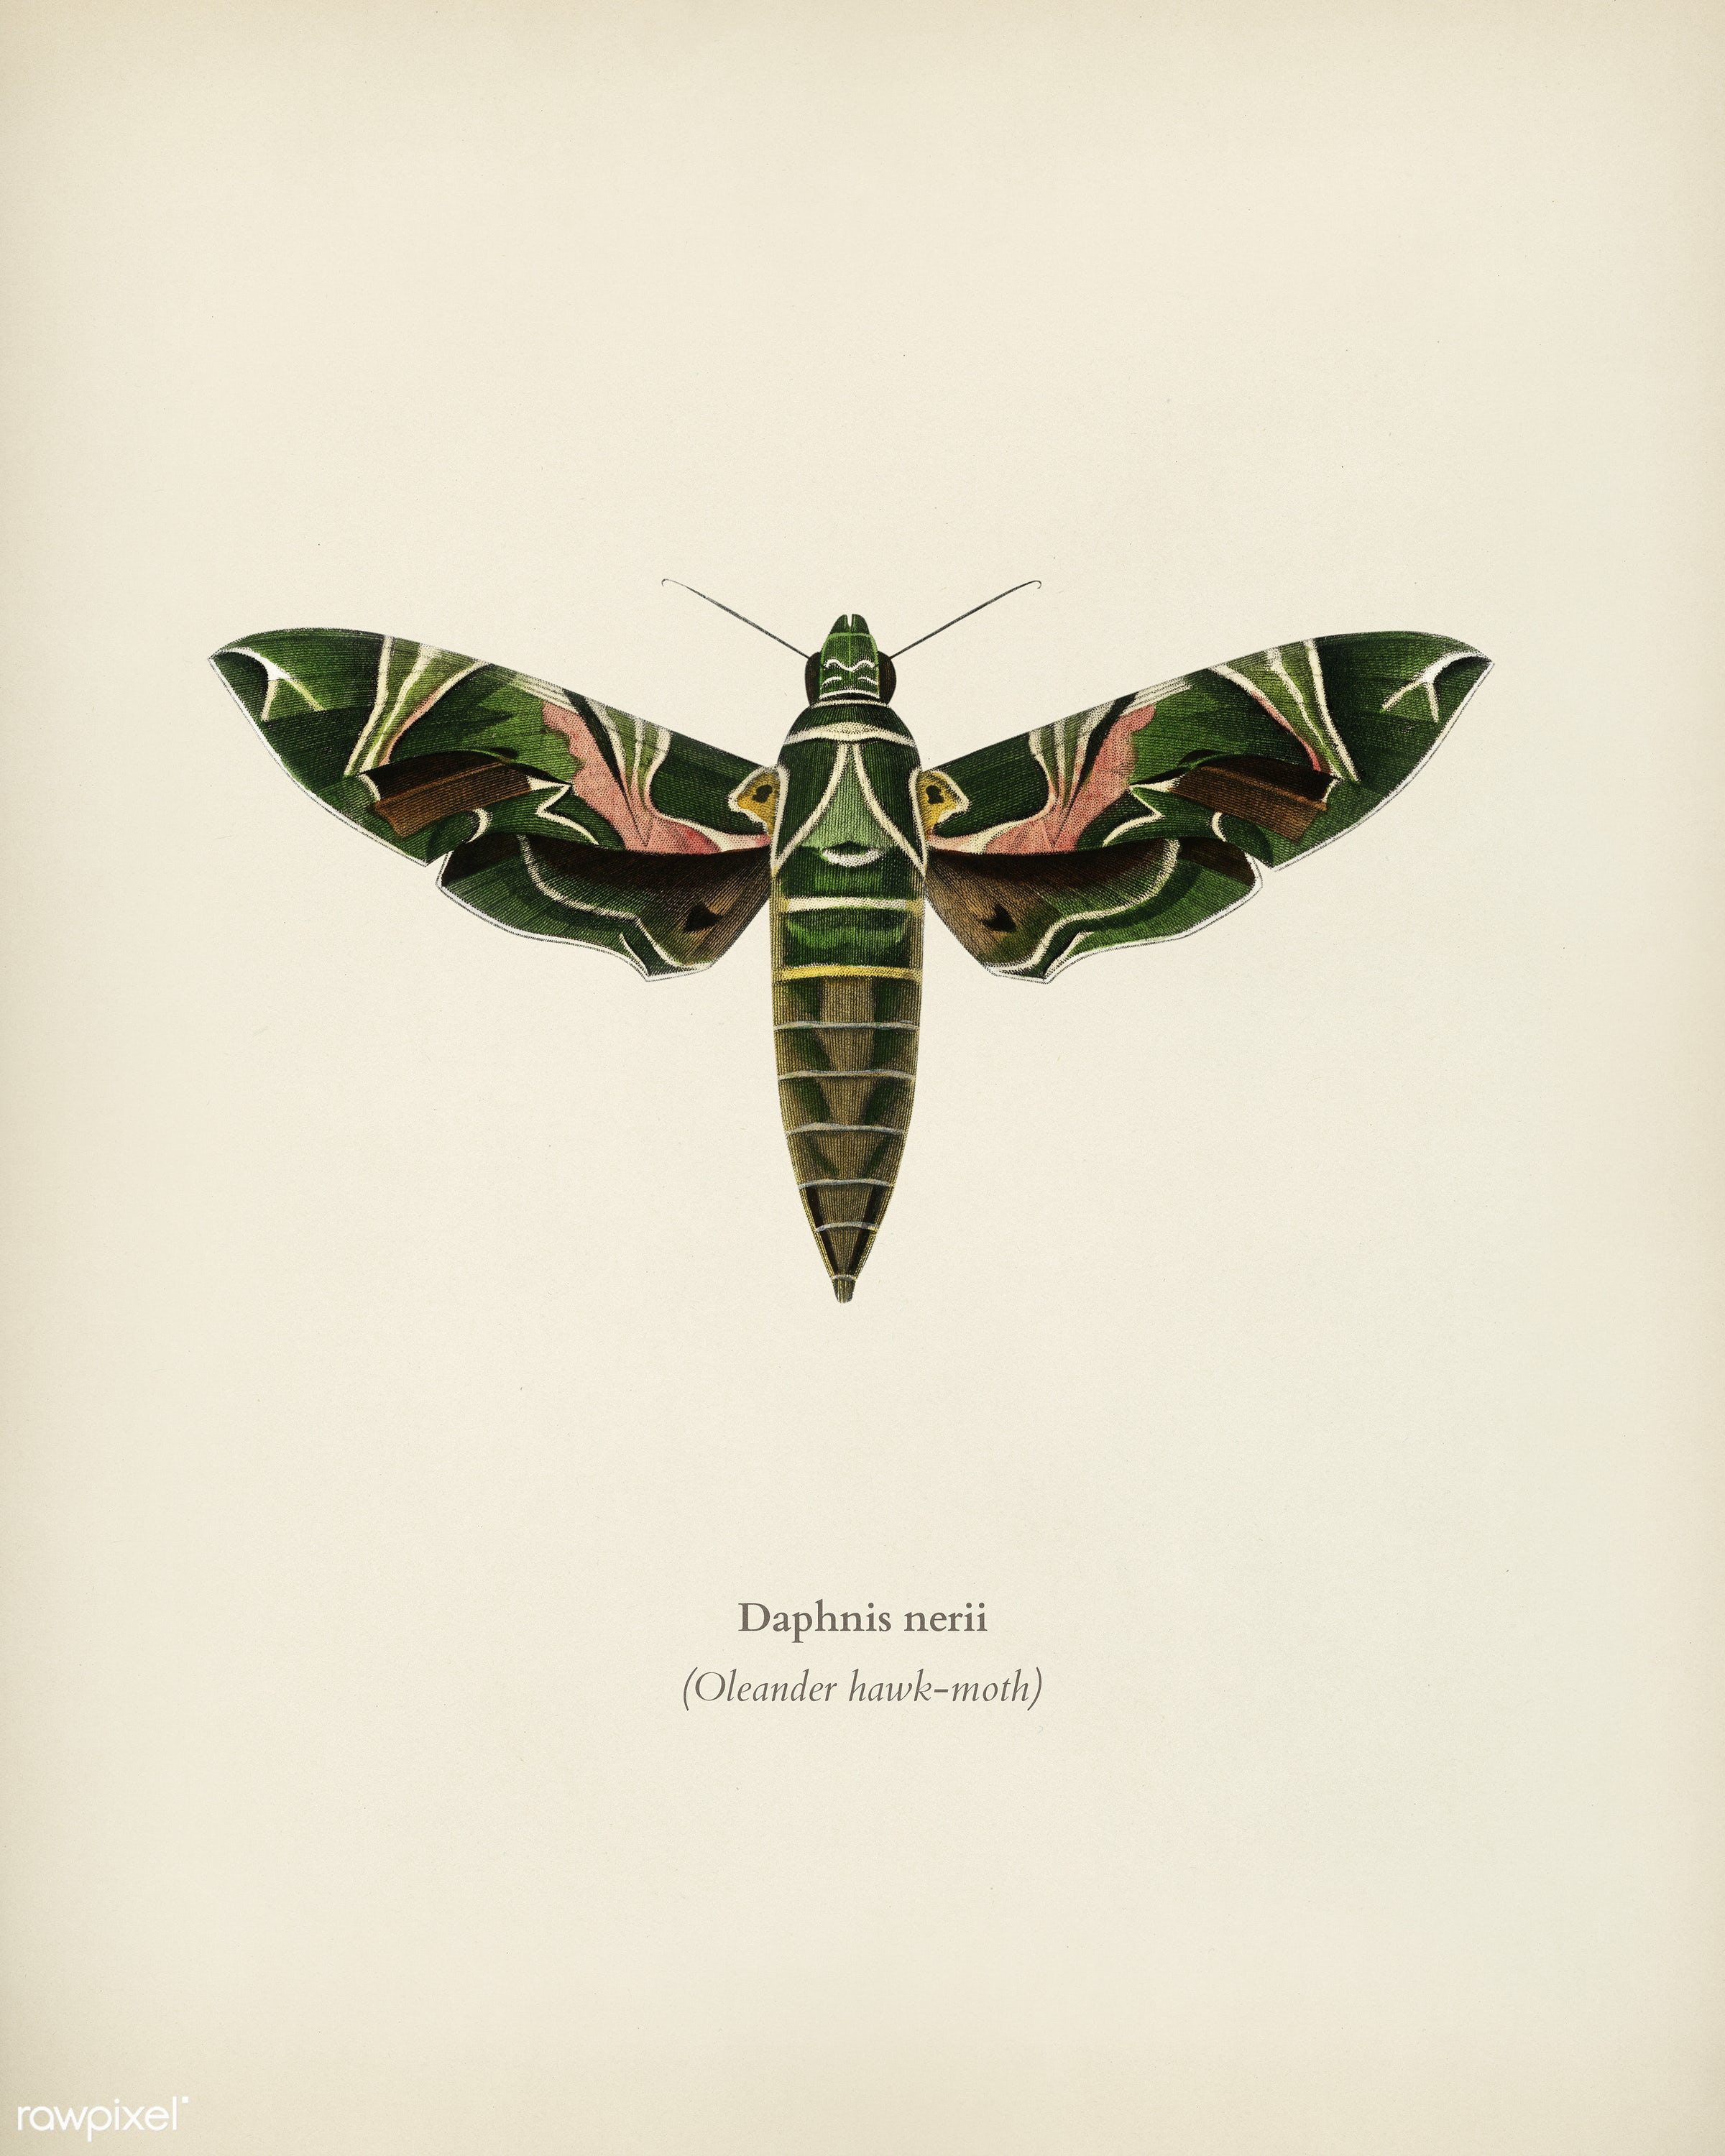 Oleander hawk-moth (daphnis nerii) illustrated by Charles Dessalines D' Orbigny (1806-1876). Digitally enhanced from our...